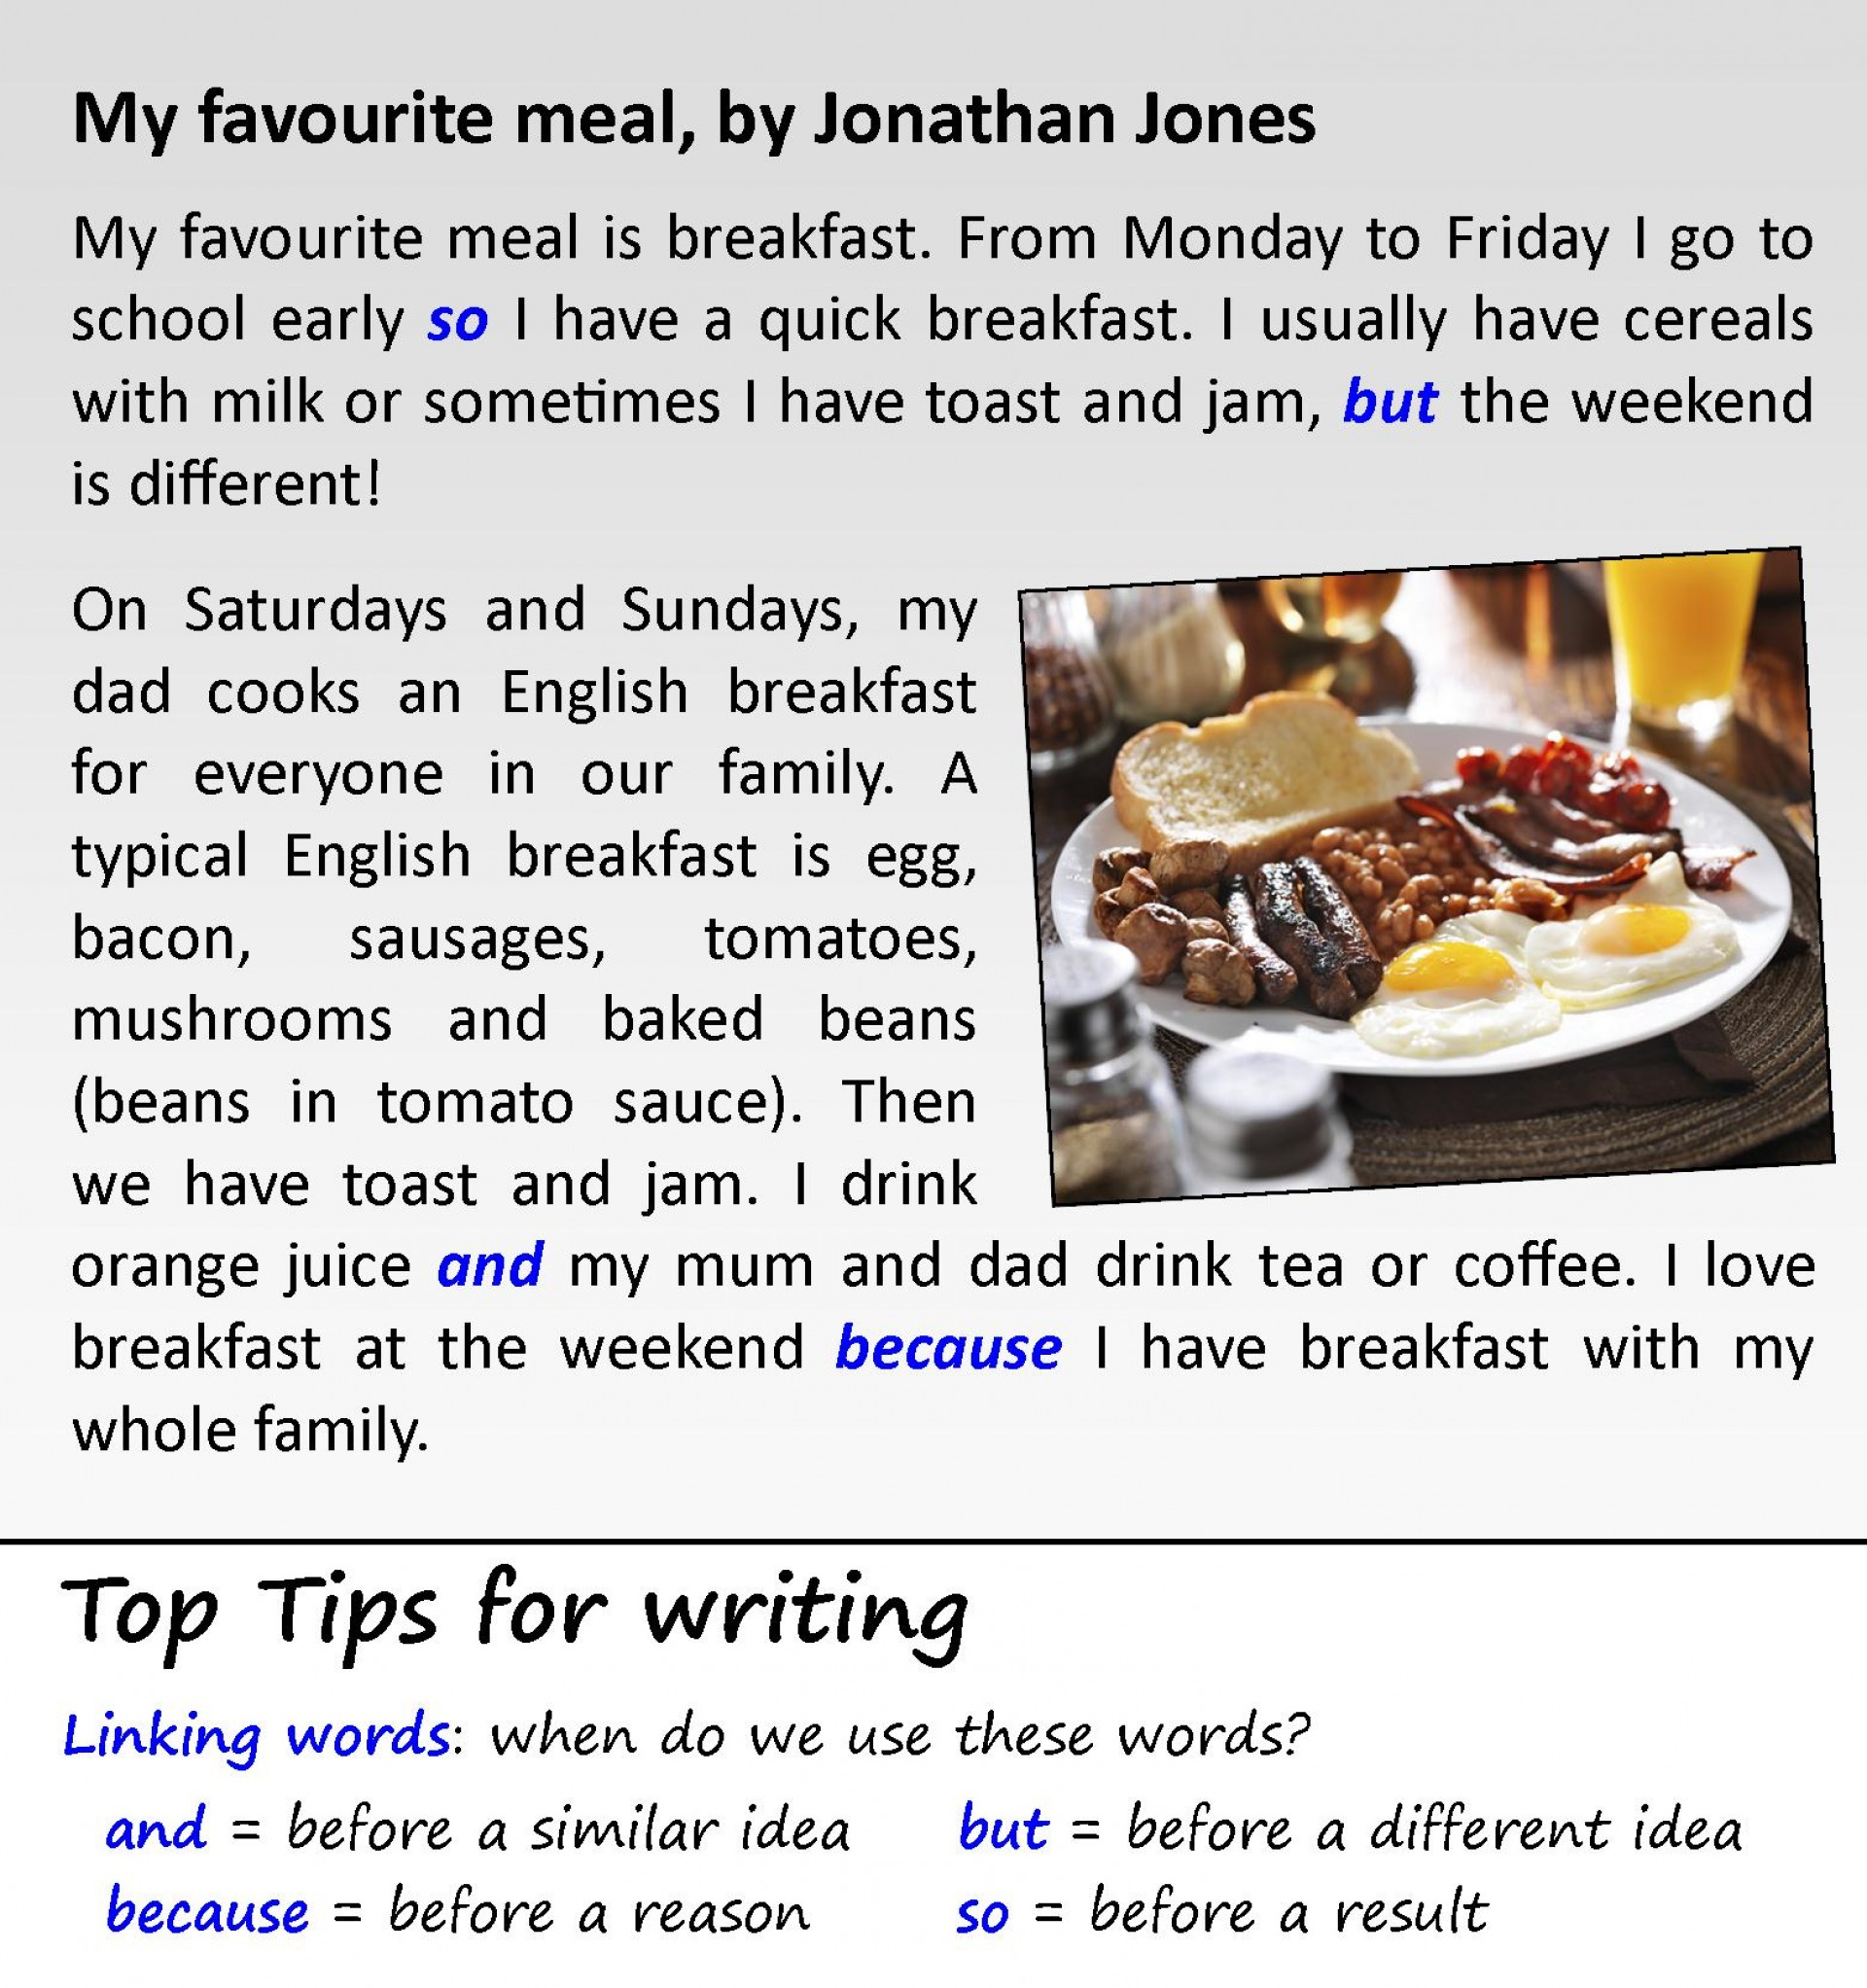 001 Favorite Food Essay My Favourite Meal Awful Ielts Sample 1920